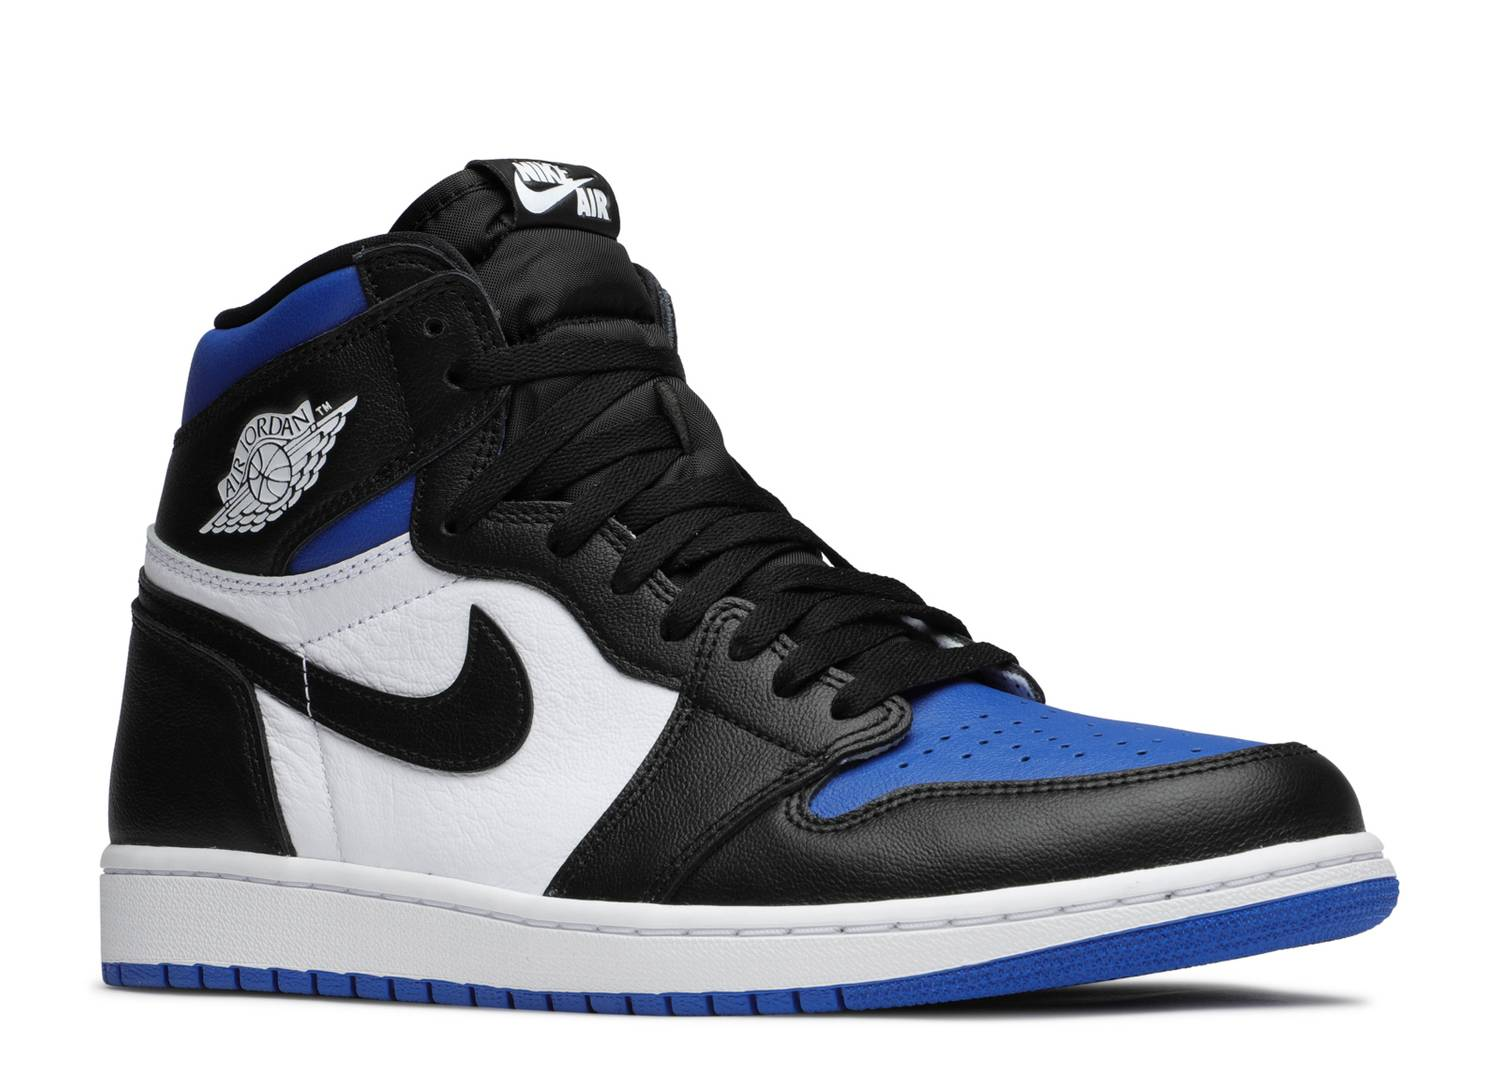 Air Jordan - Air Jordan 1 Retro High OG 'Royal Toe' - 555088-041 -  Walmart.com